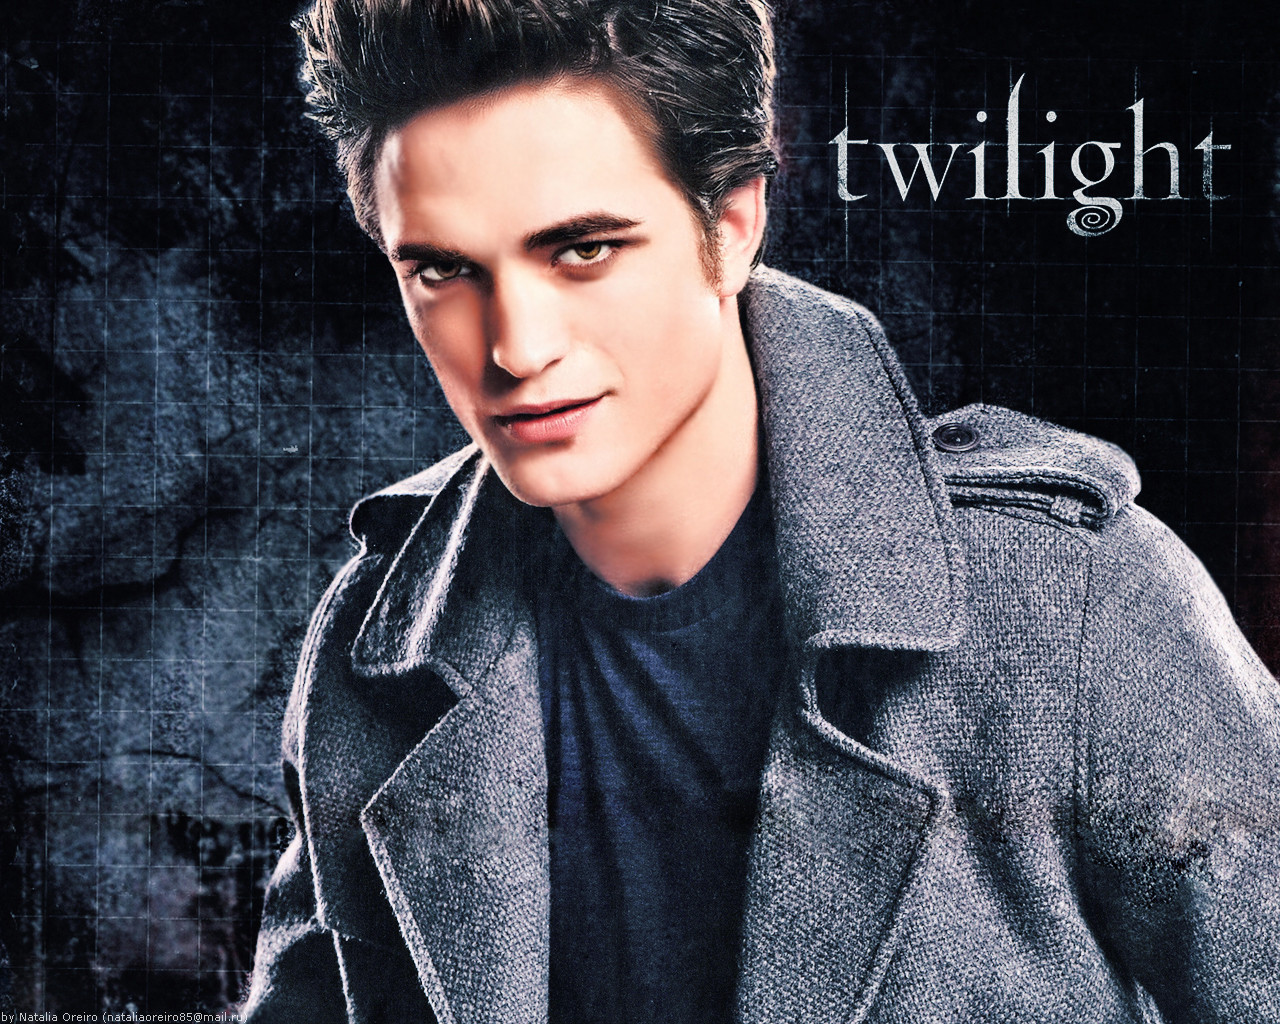 Edward+Cullen++9 edward cullen wallpapers